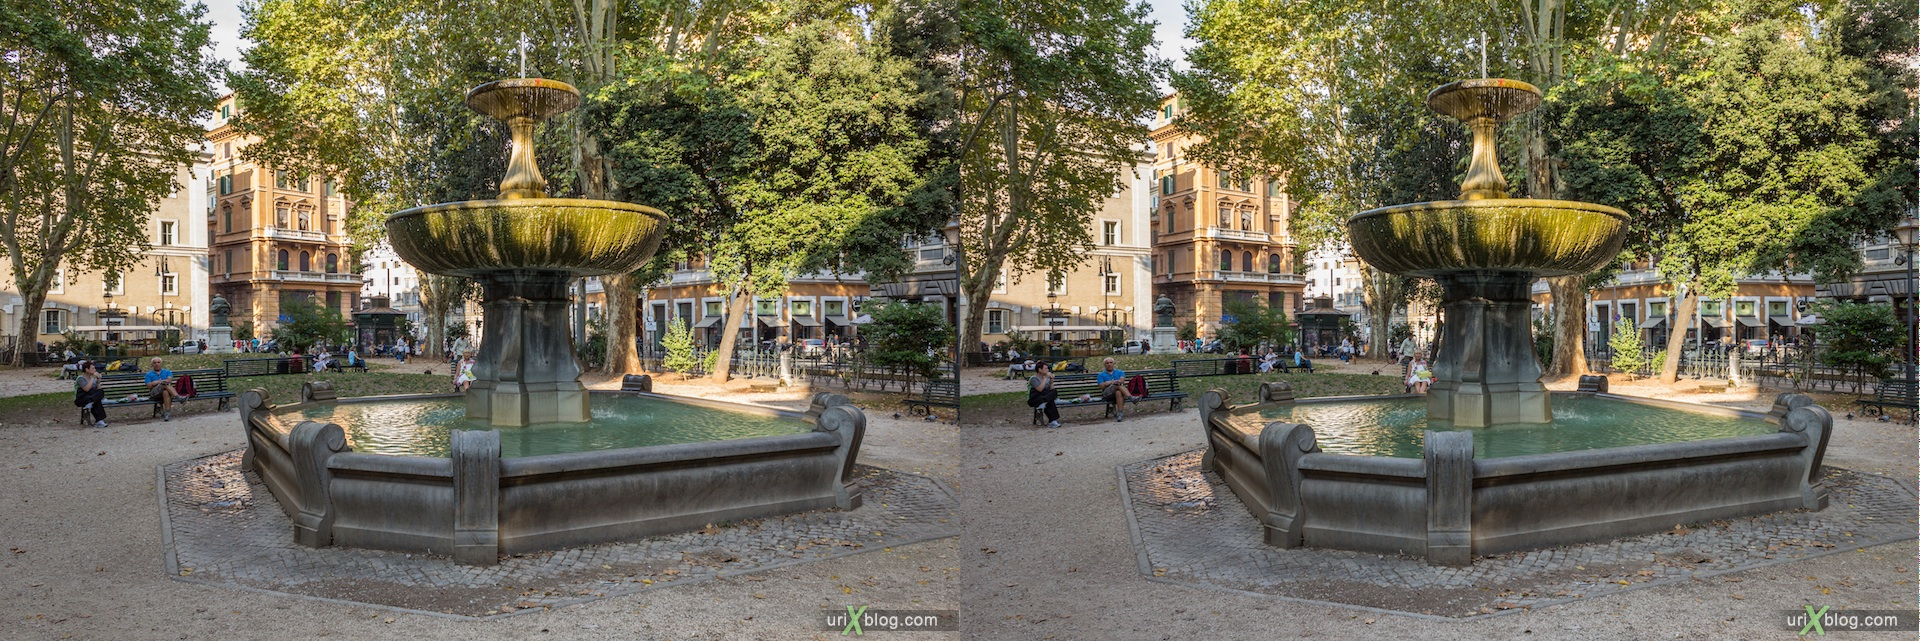 2012, fountain Cairoli, Rome, Italy, 3D, stereo pair, cross-eyed, crossview, cross view stereo pair